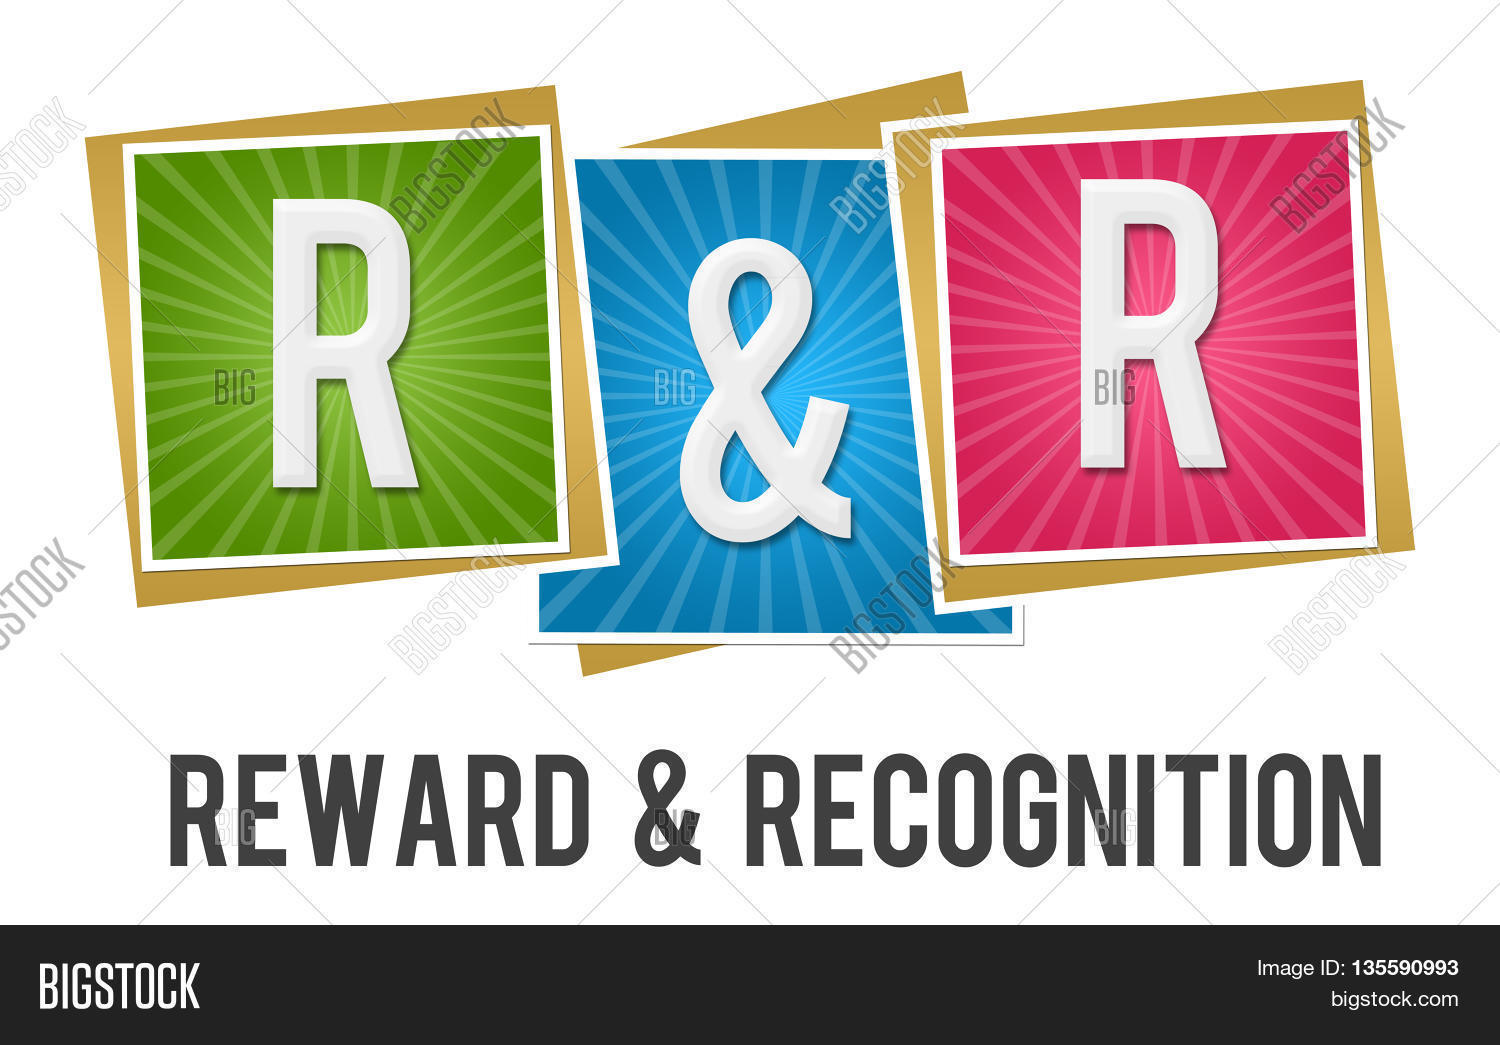 rewards and recognition Rewards and recognition are effective ways to improve performance, increase employee engagement, and create a strong culture both rewards and recognition lead to desired performance what gets rewarded gets repeated learn how to design and implement a total rewards program with effective.